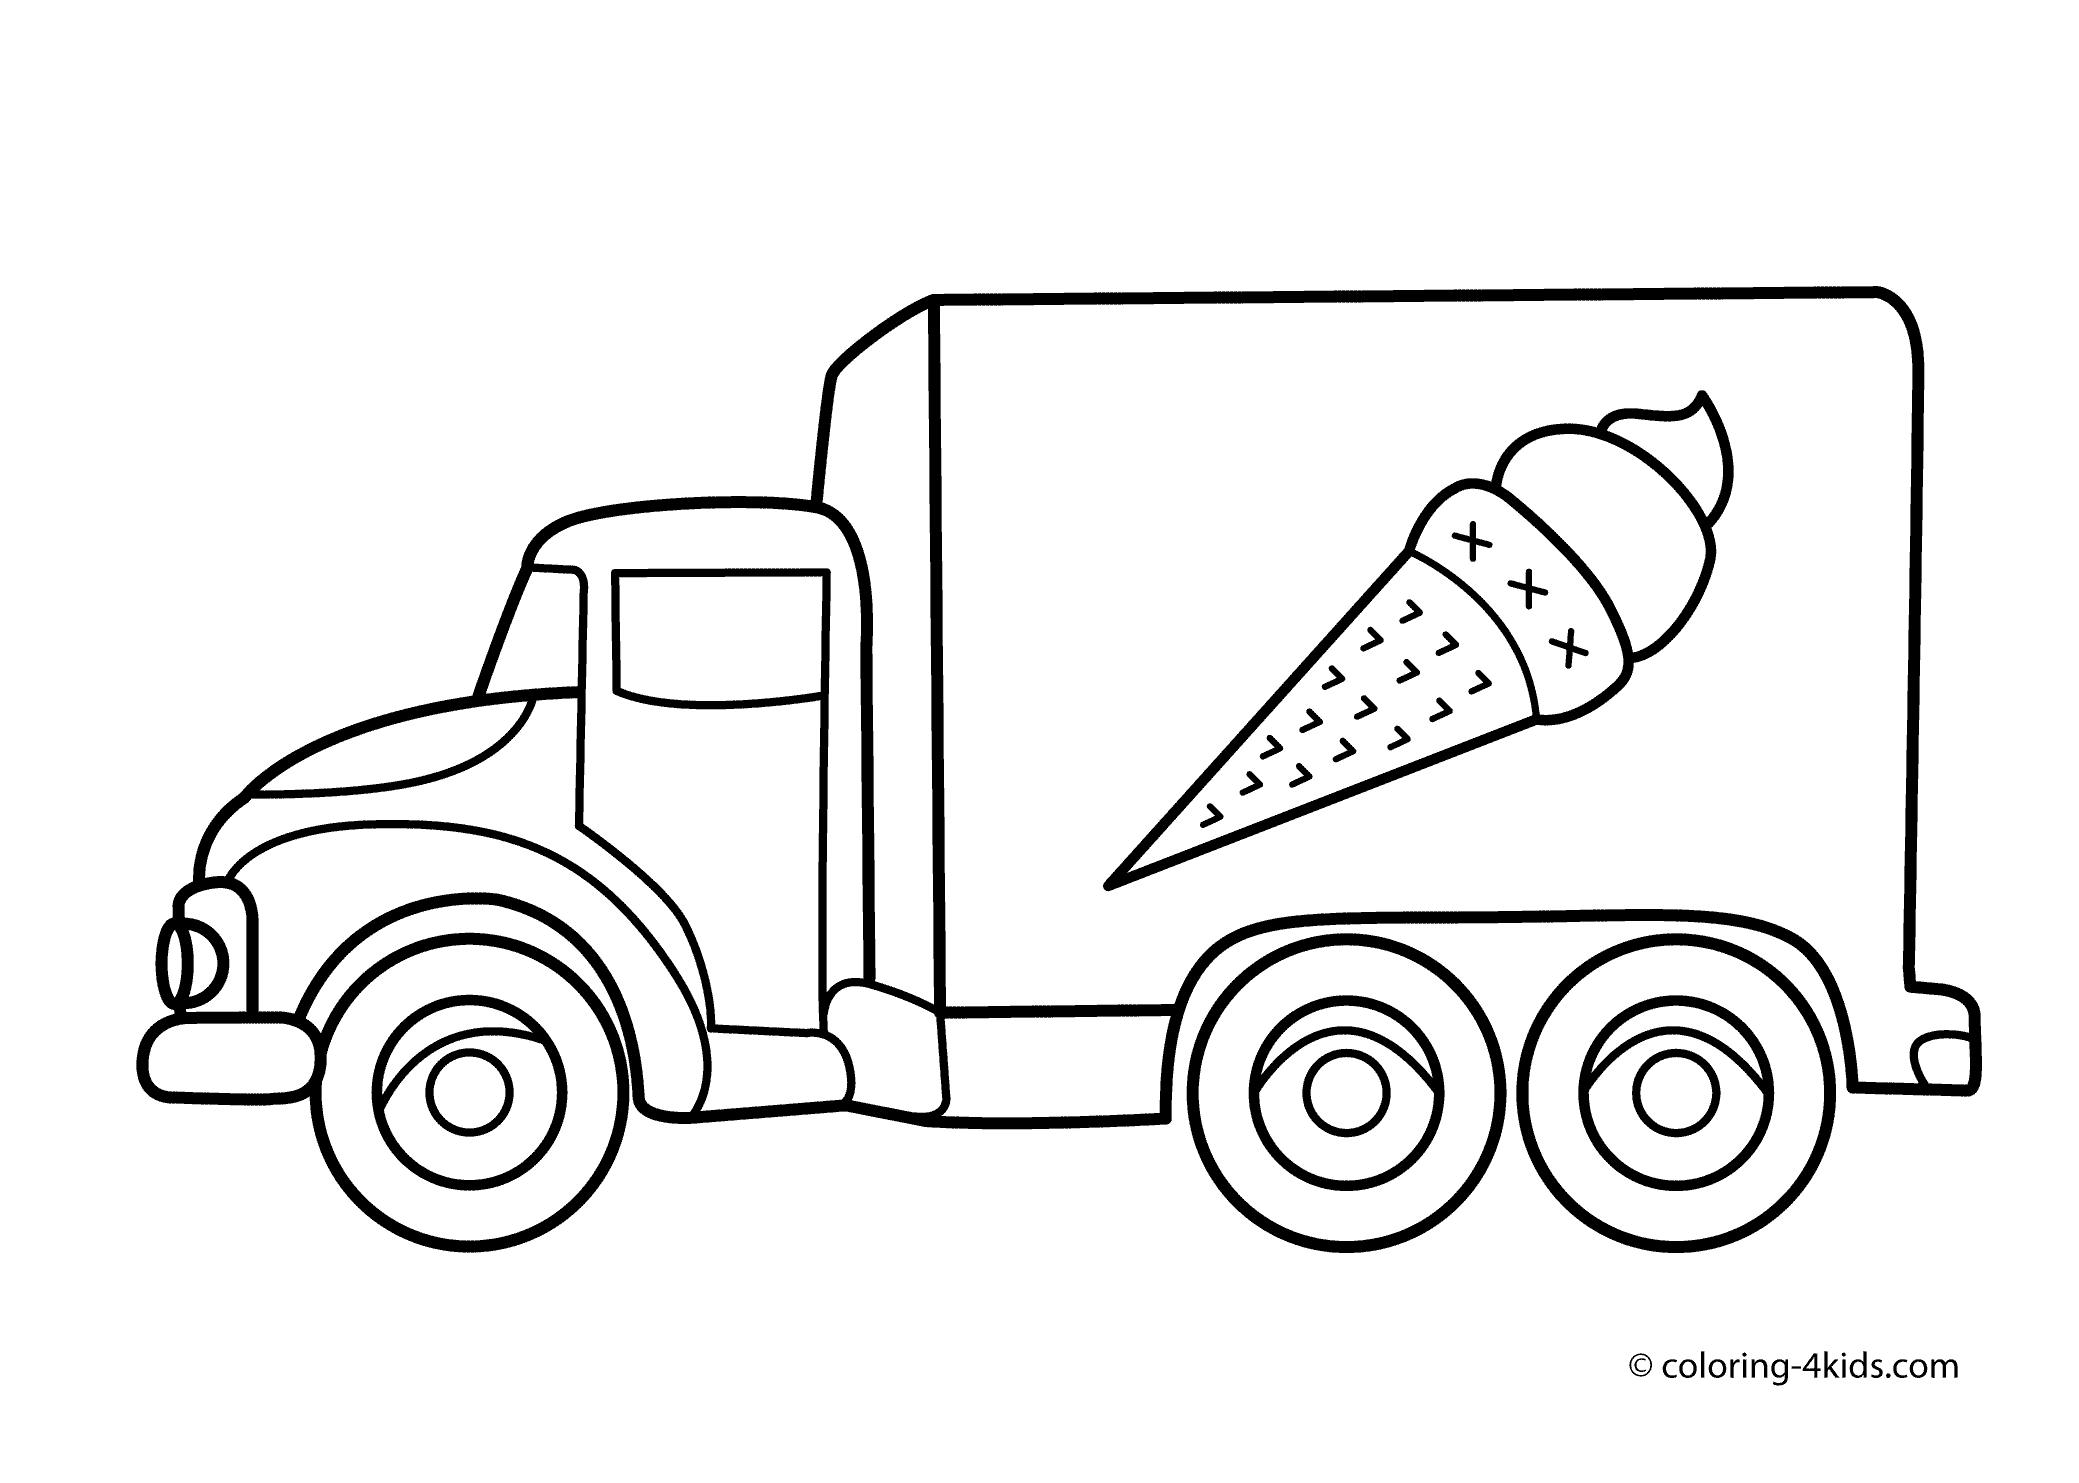 Truck clipart black and white Luxury Truck clipart black and.